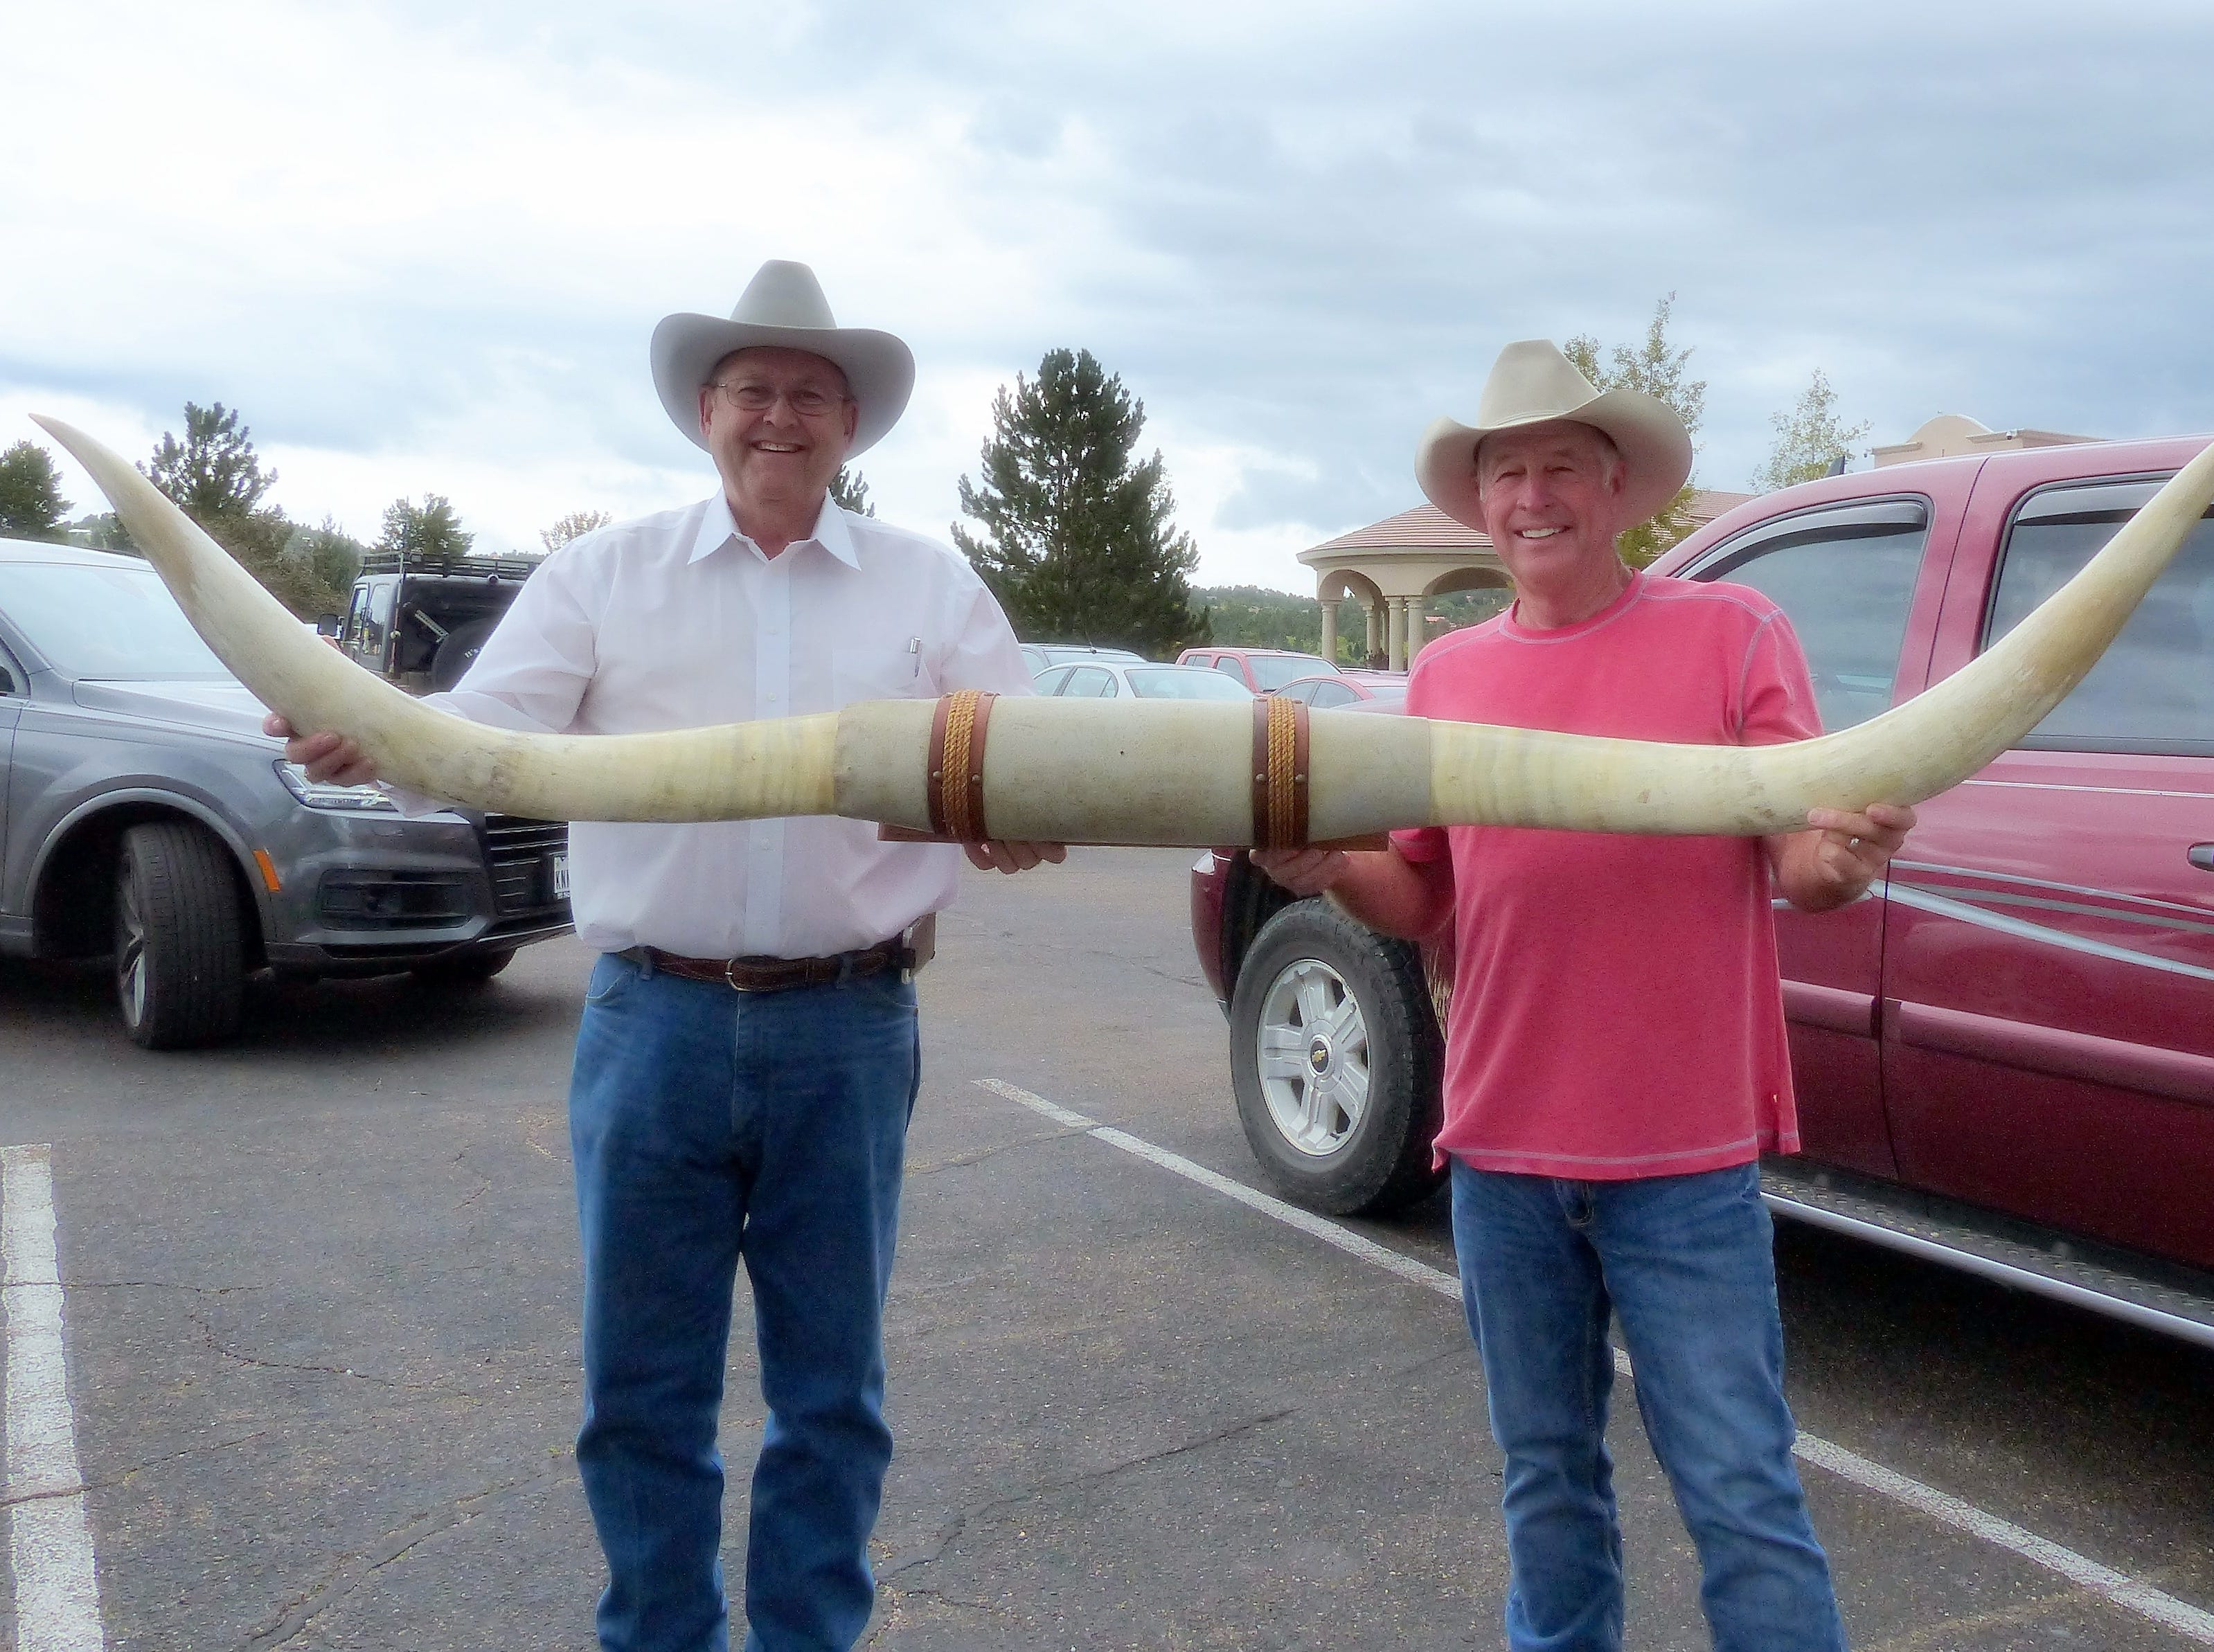 Randy Hutto of Dripping Springs, Texas, left, and Gary Simon from Joppa, Texas are going home with a mighty big collectible,